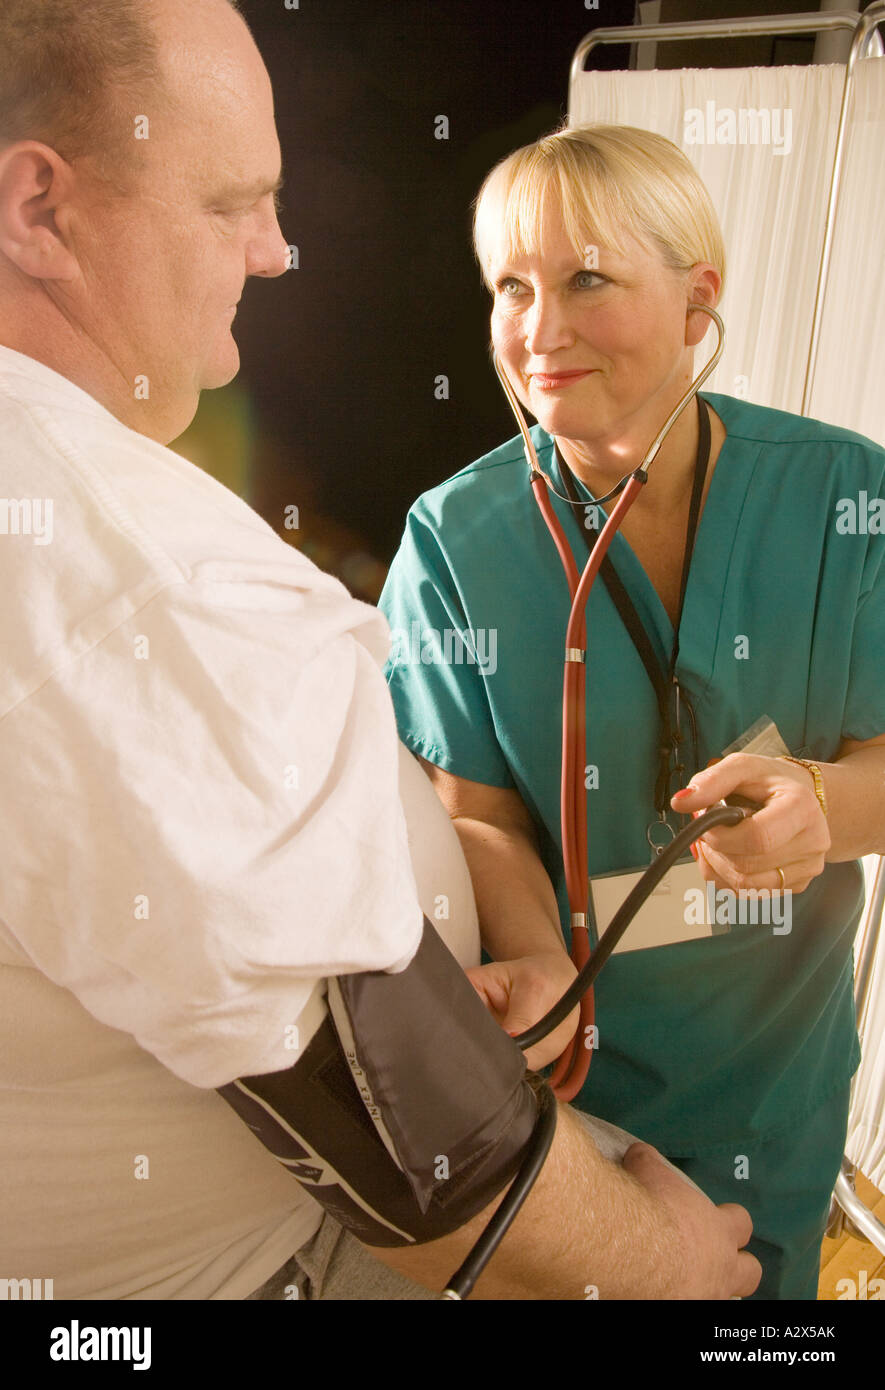 Nurse taking the blood pressure reading from an overweight patient. - Stock Image